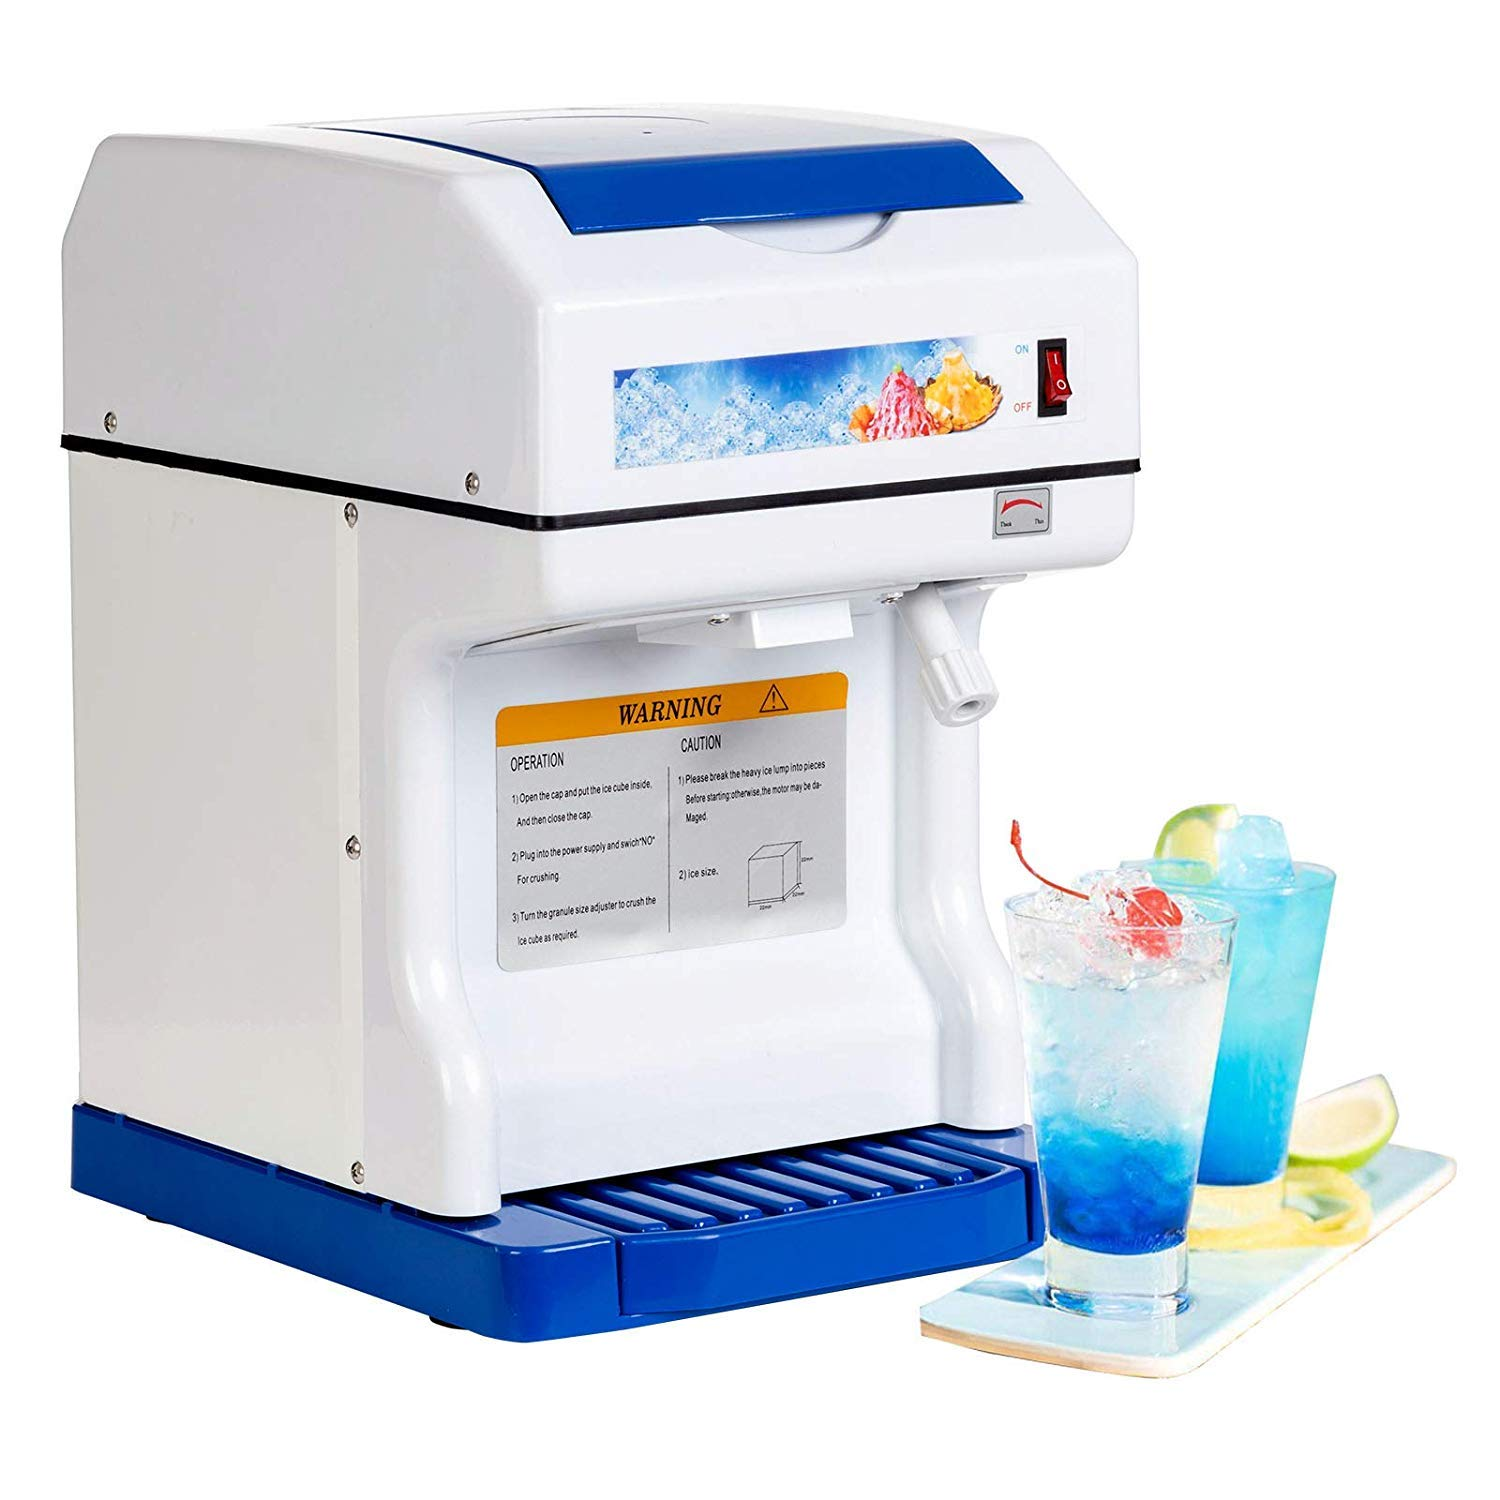 Nurxiovo Ice Shaver Machine Electric Ice Crusher Ice Shaving Machine Commercial Ice Crusher Snow Cone Maker Machine Shaved Ice Crusher, 350 r/m Perfect For Parties by Nurxiovo